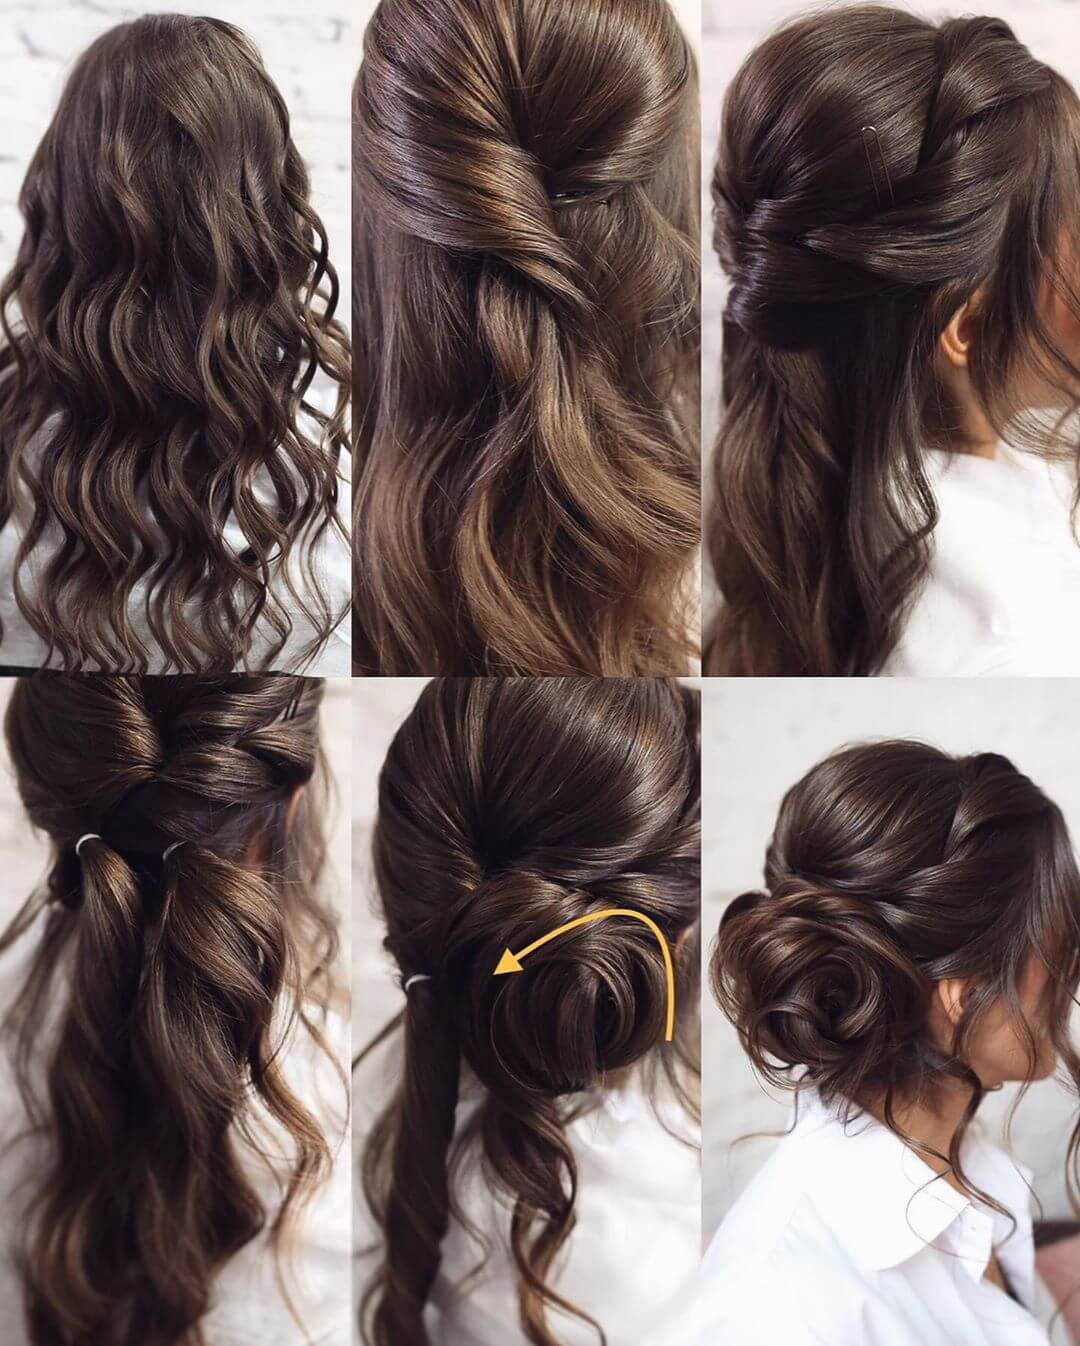 Step by Step Frezzy side bun Hairstyles for Long, Medium, Short Hair